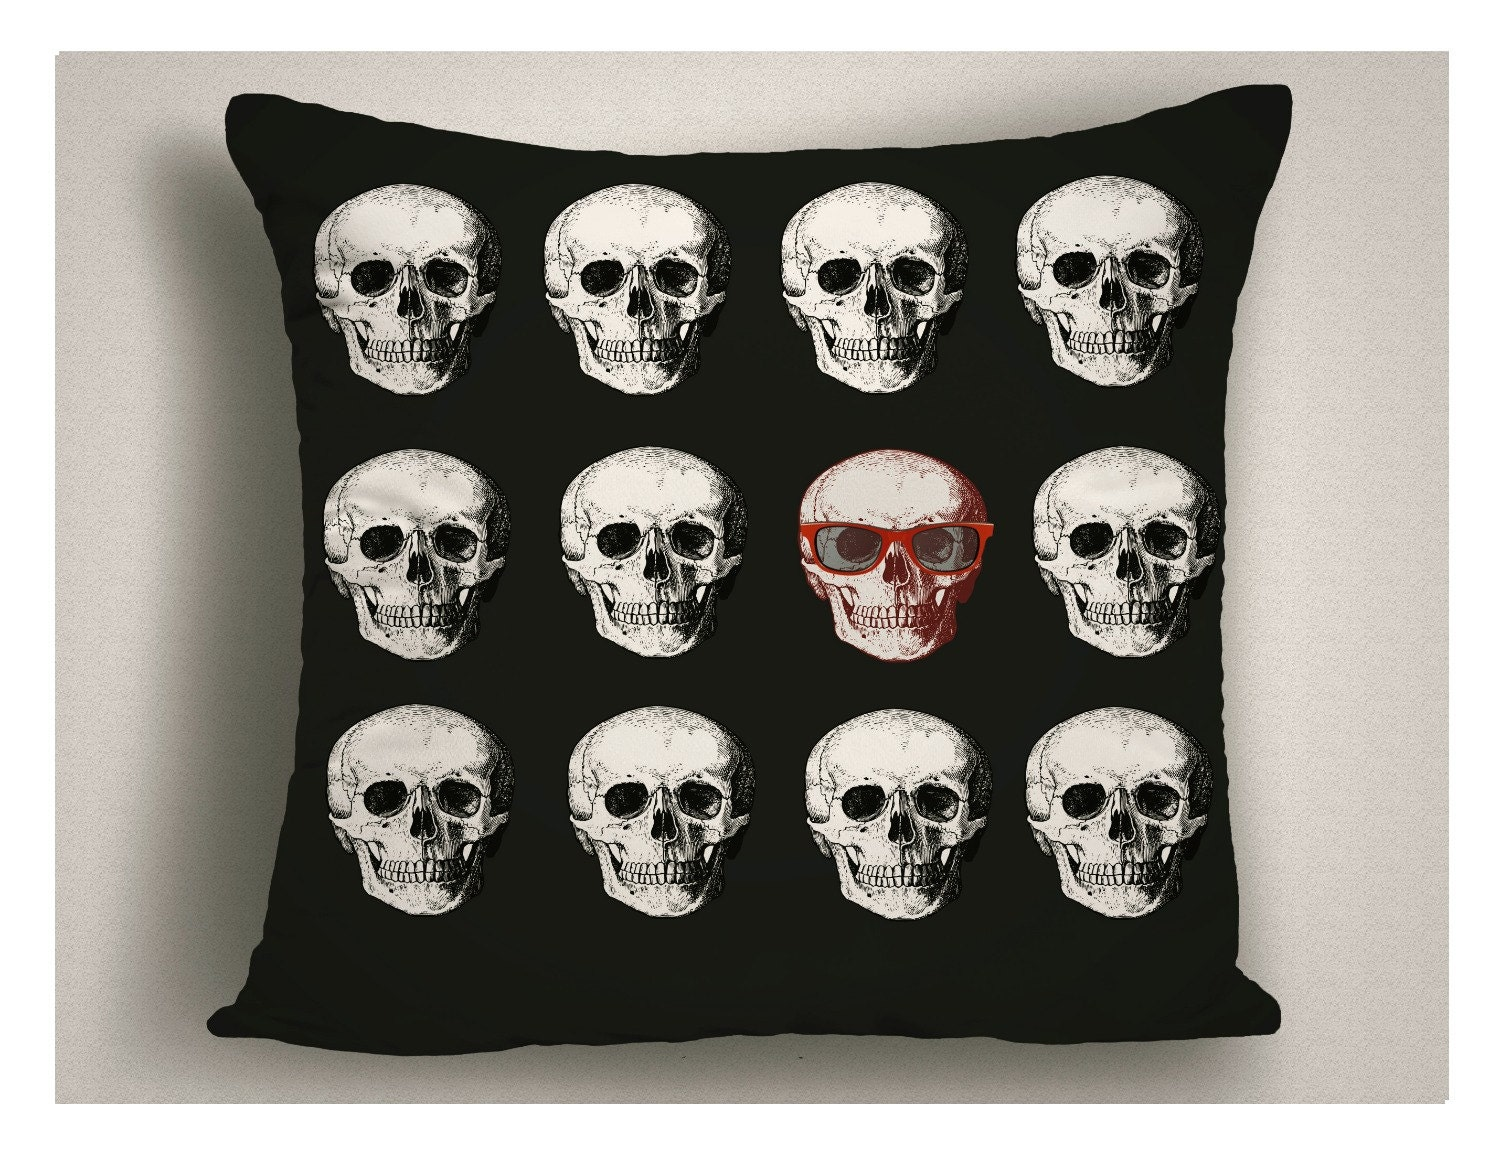 Skull with Glasses Halloween Pillow, Halloween Decorations, Throw ...